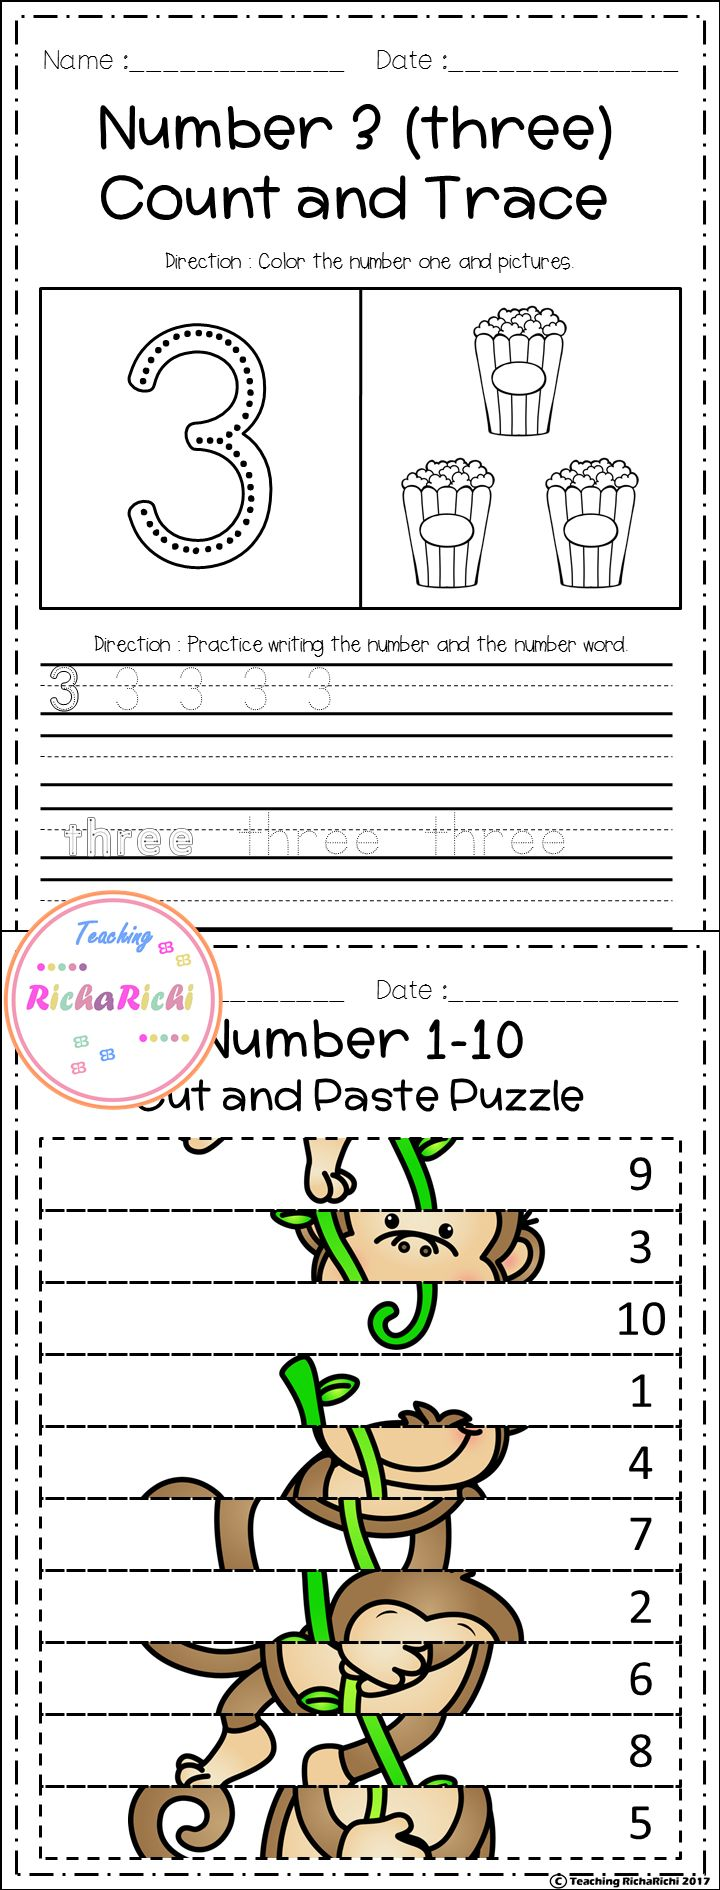 Freebies, FREE number fluency 1-10 for prek and kindergarten activities.